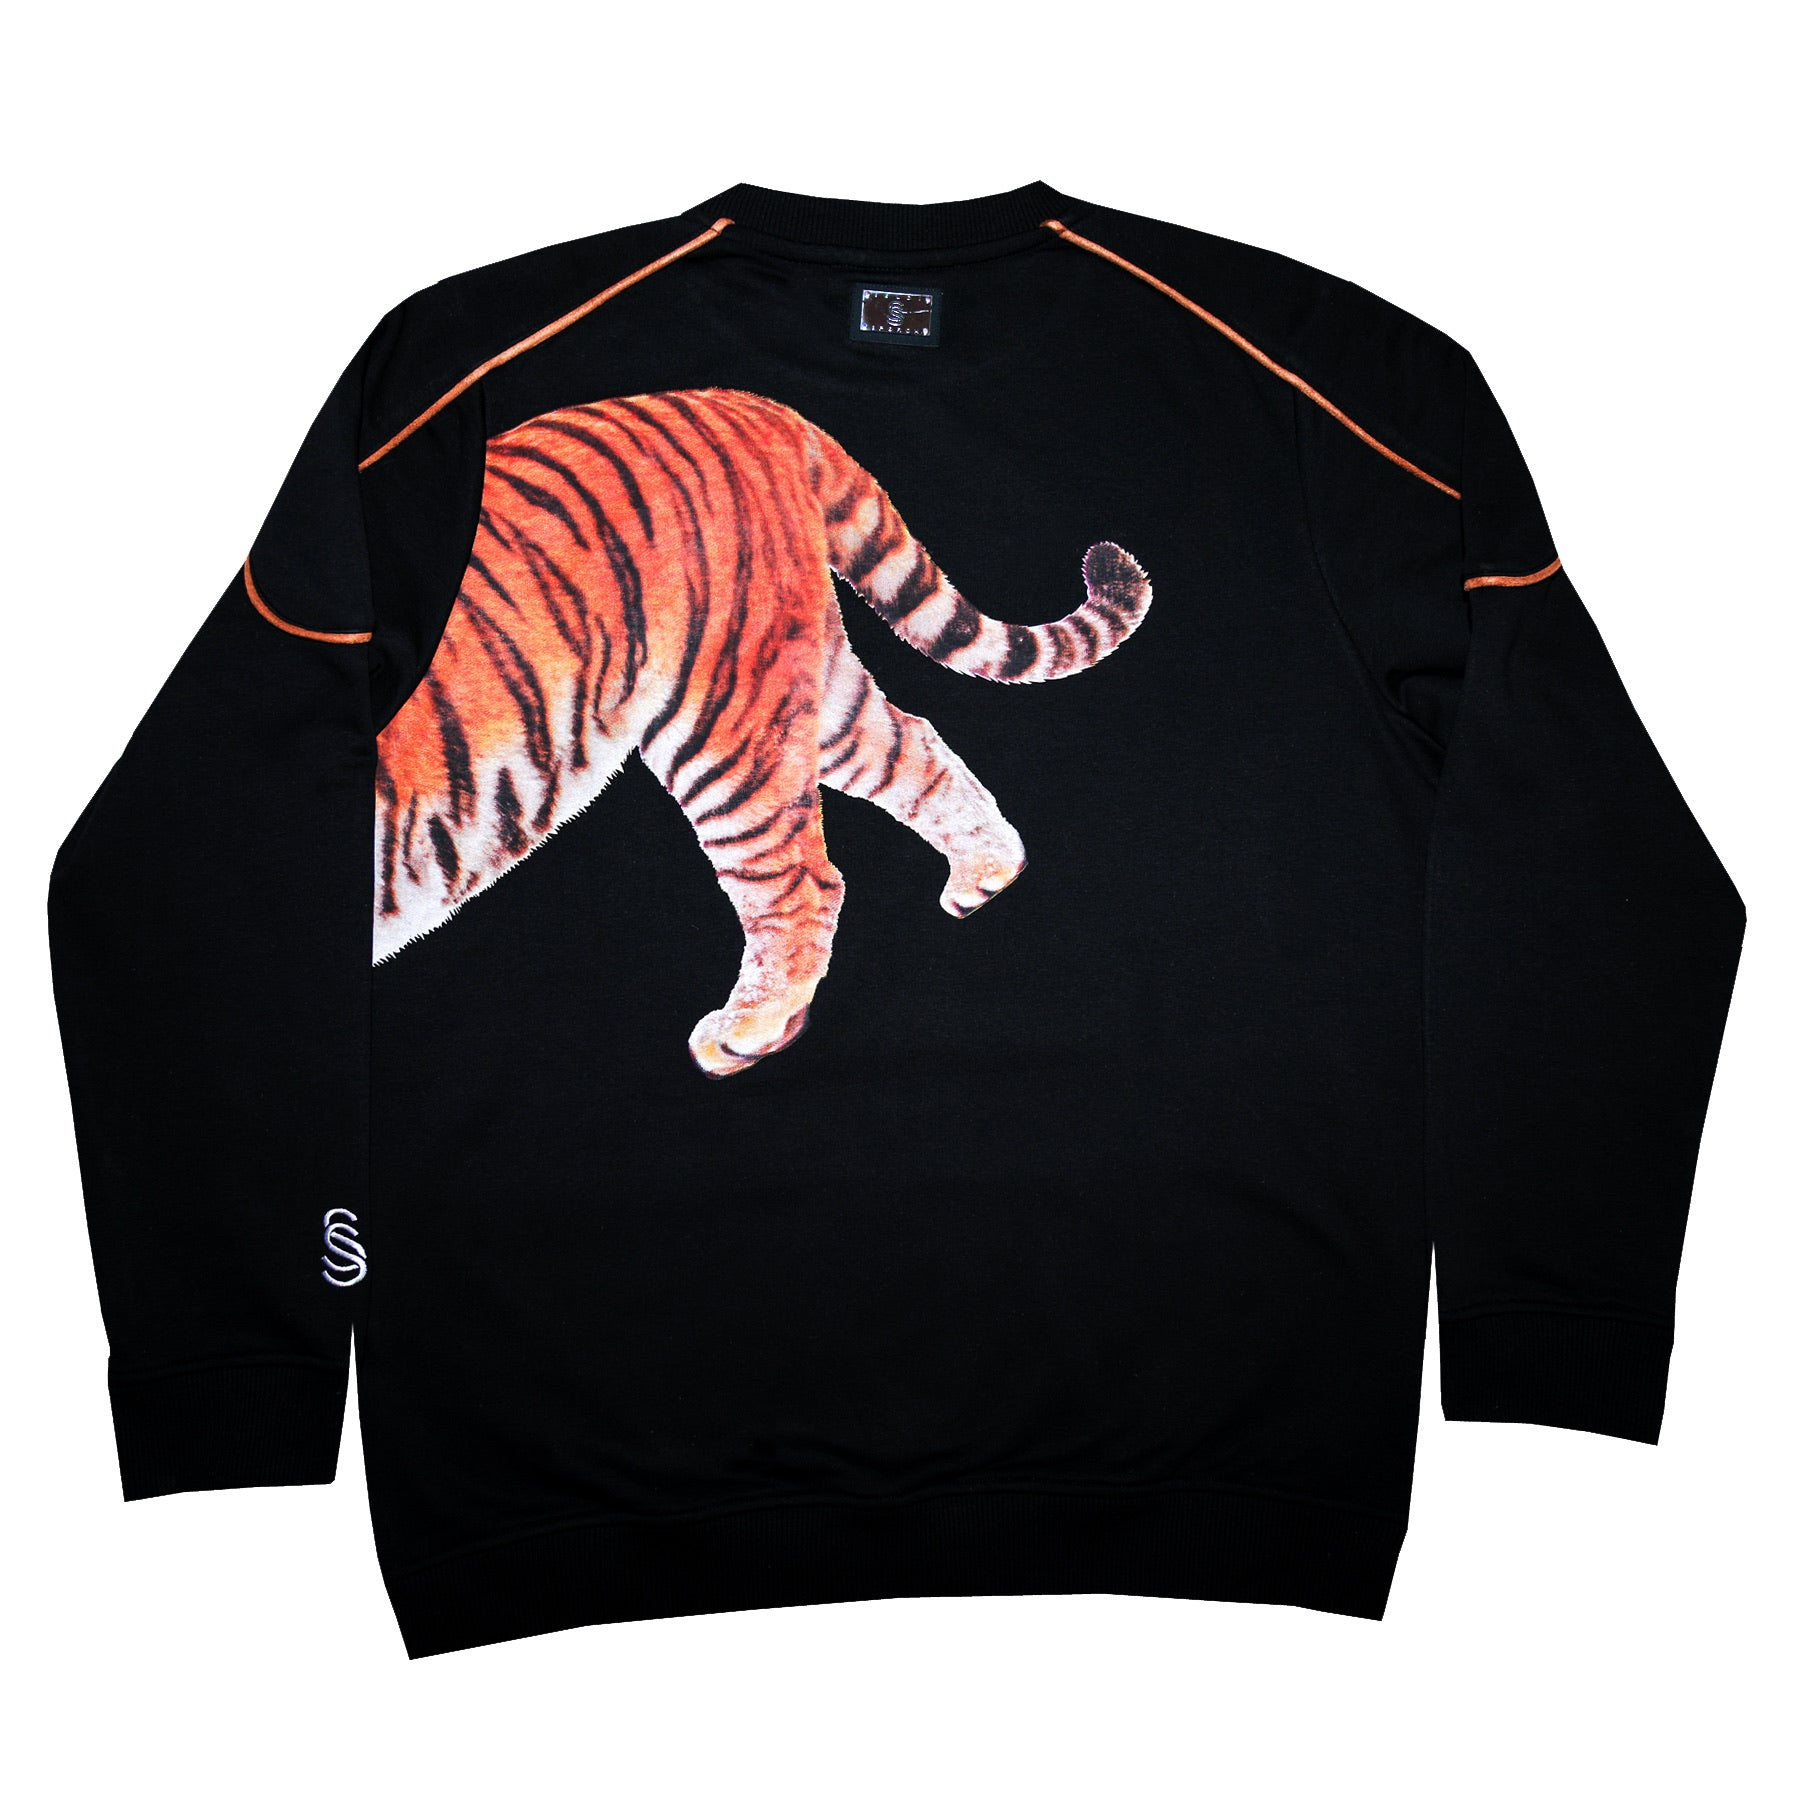 BlK Griffin sweatshirt